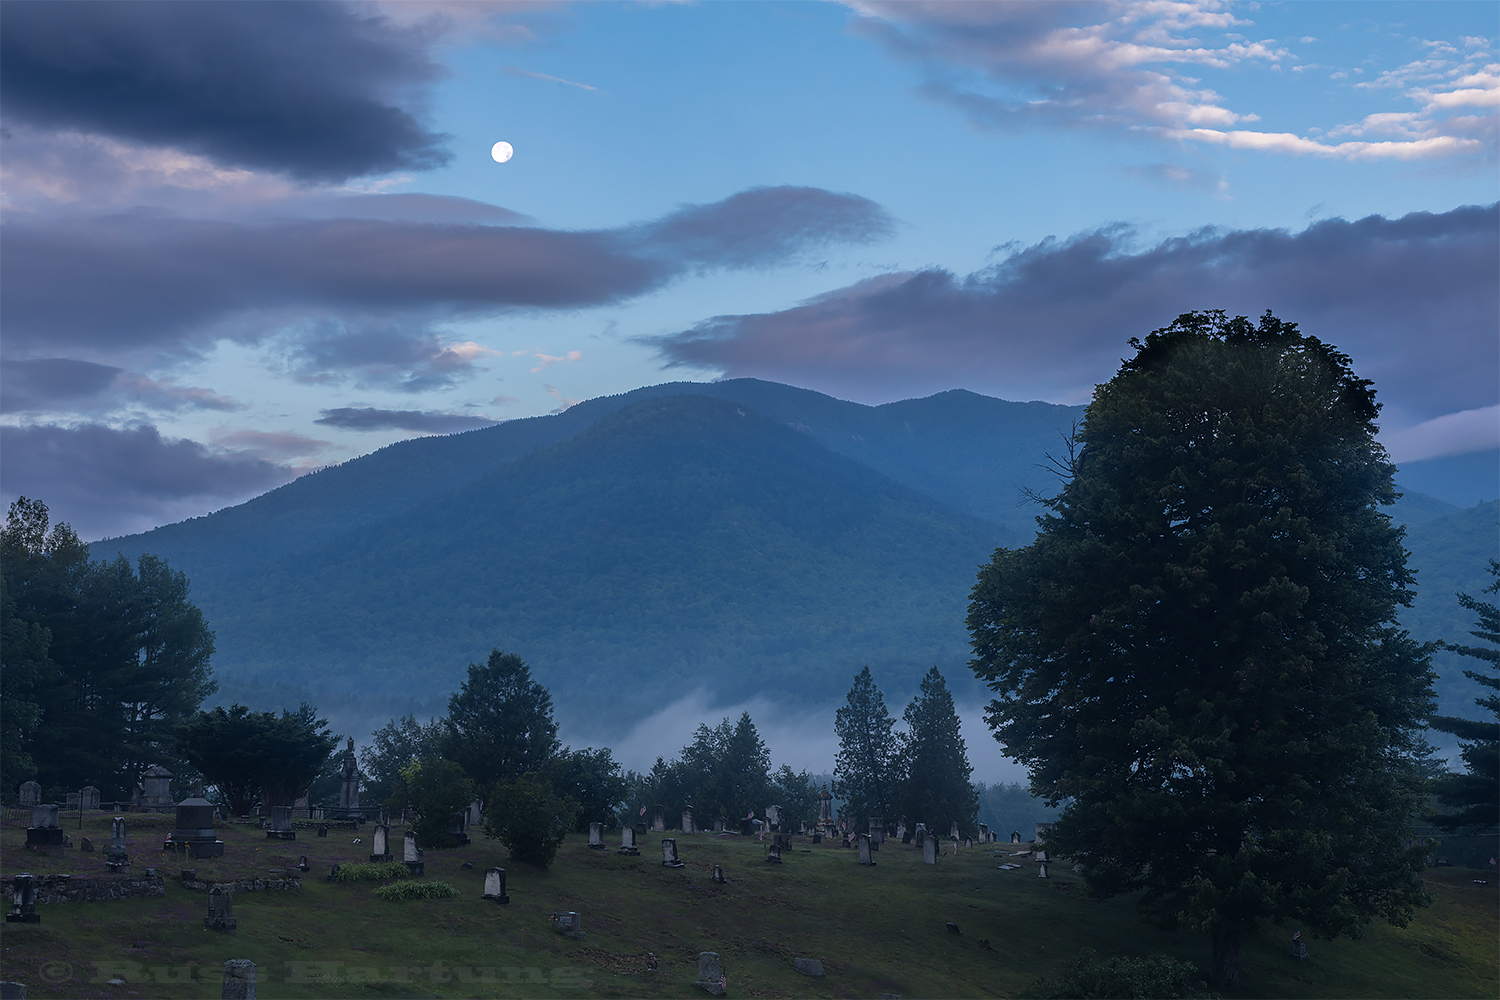 Moonset over Porter and Cascade from the cemetery in Keene.